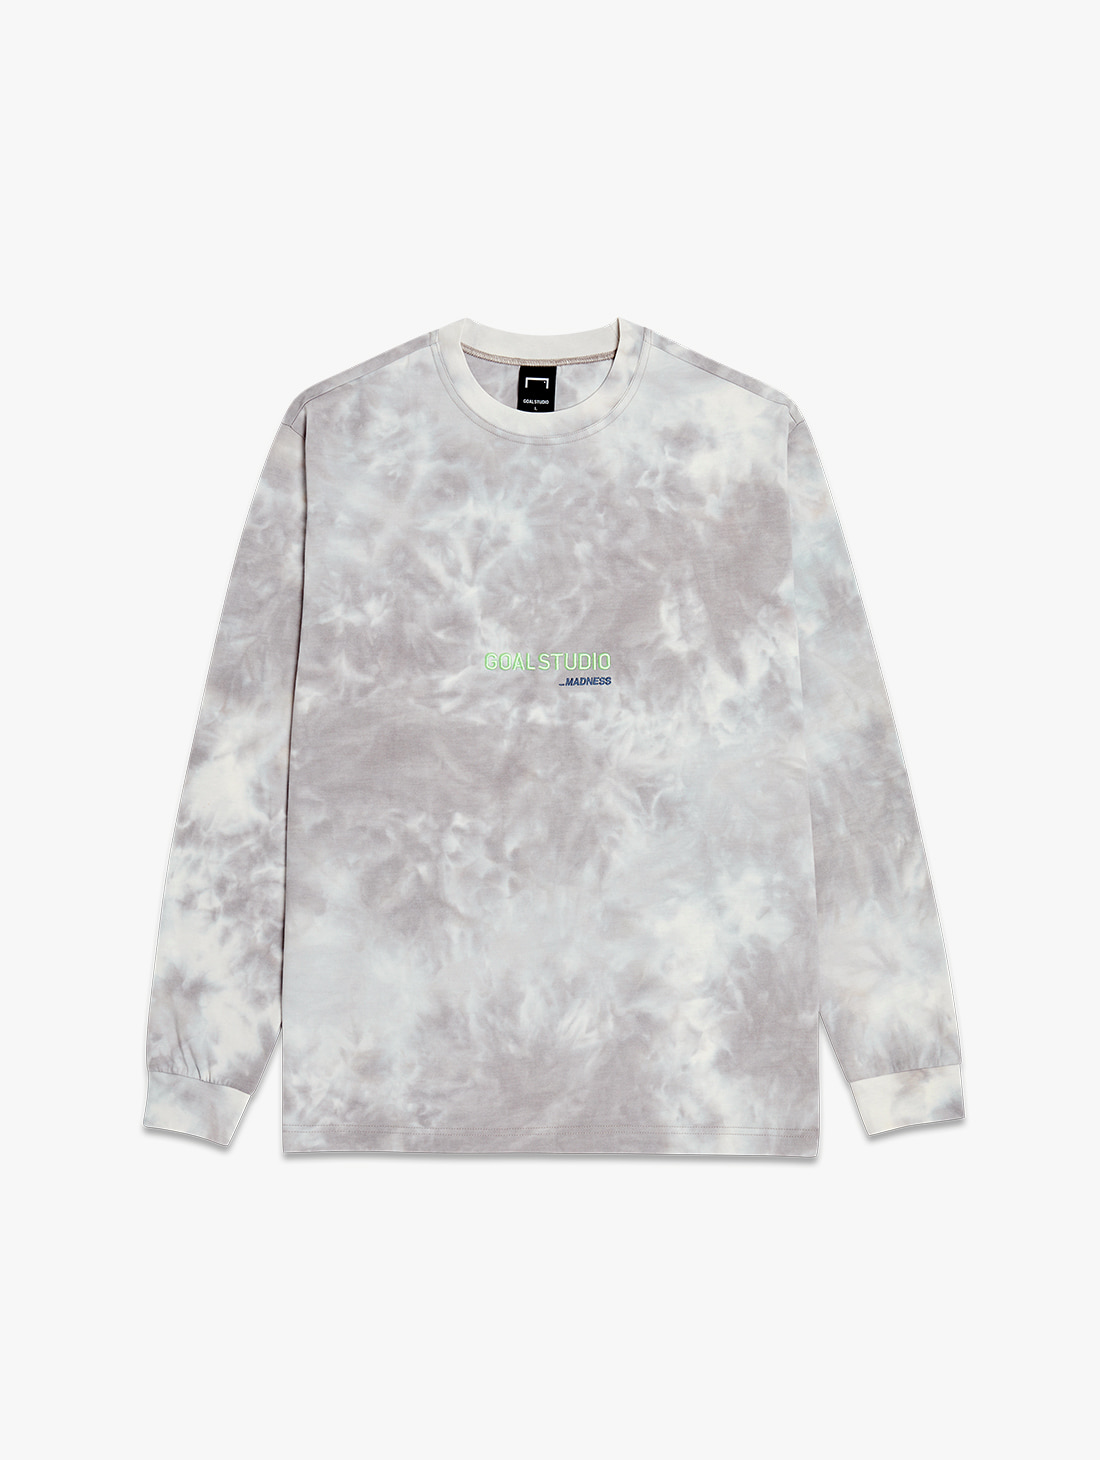 GOALSTUDIO TIE DYE LONG SLEEVE TEE (2 Colors)